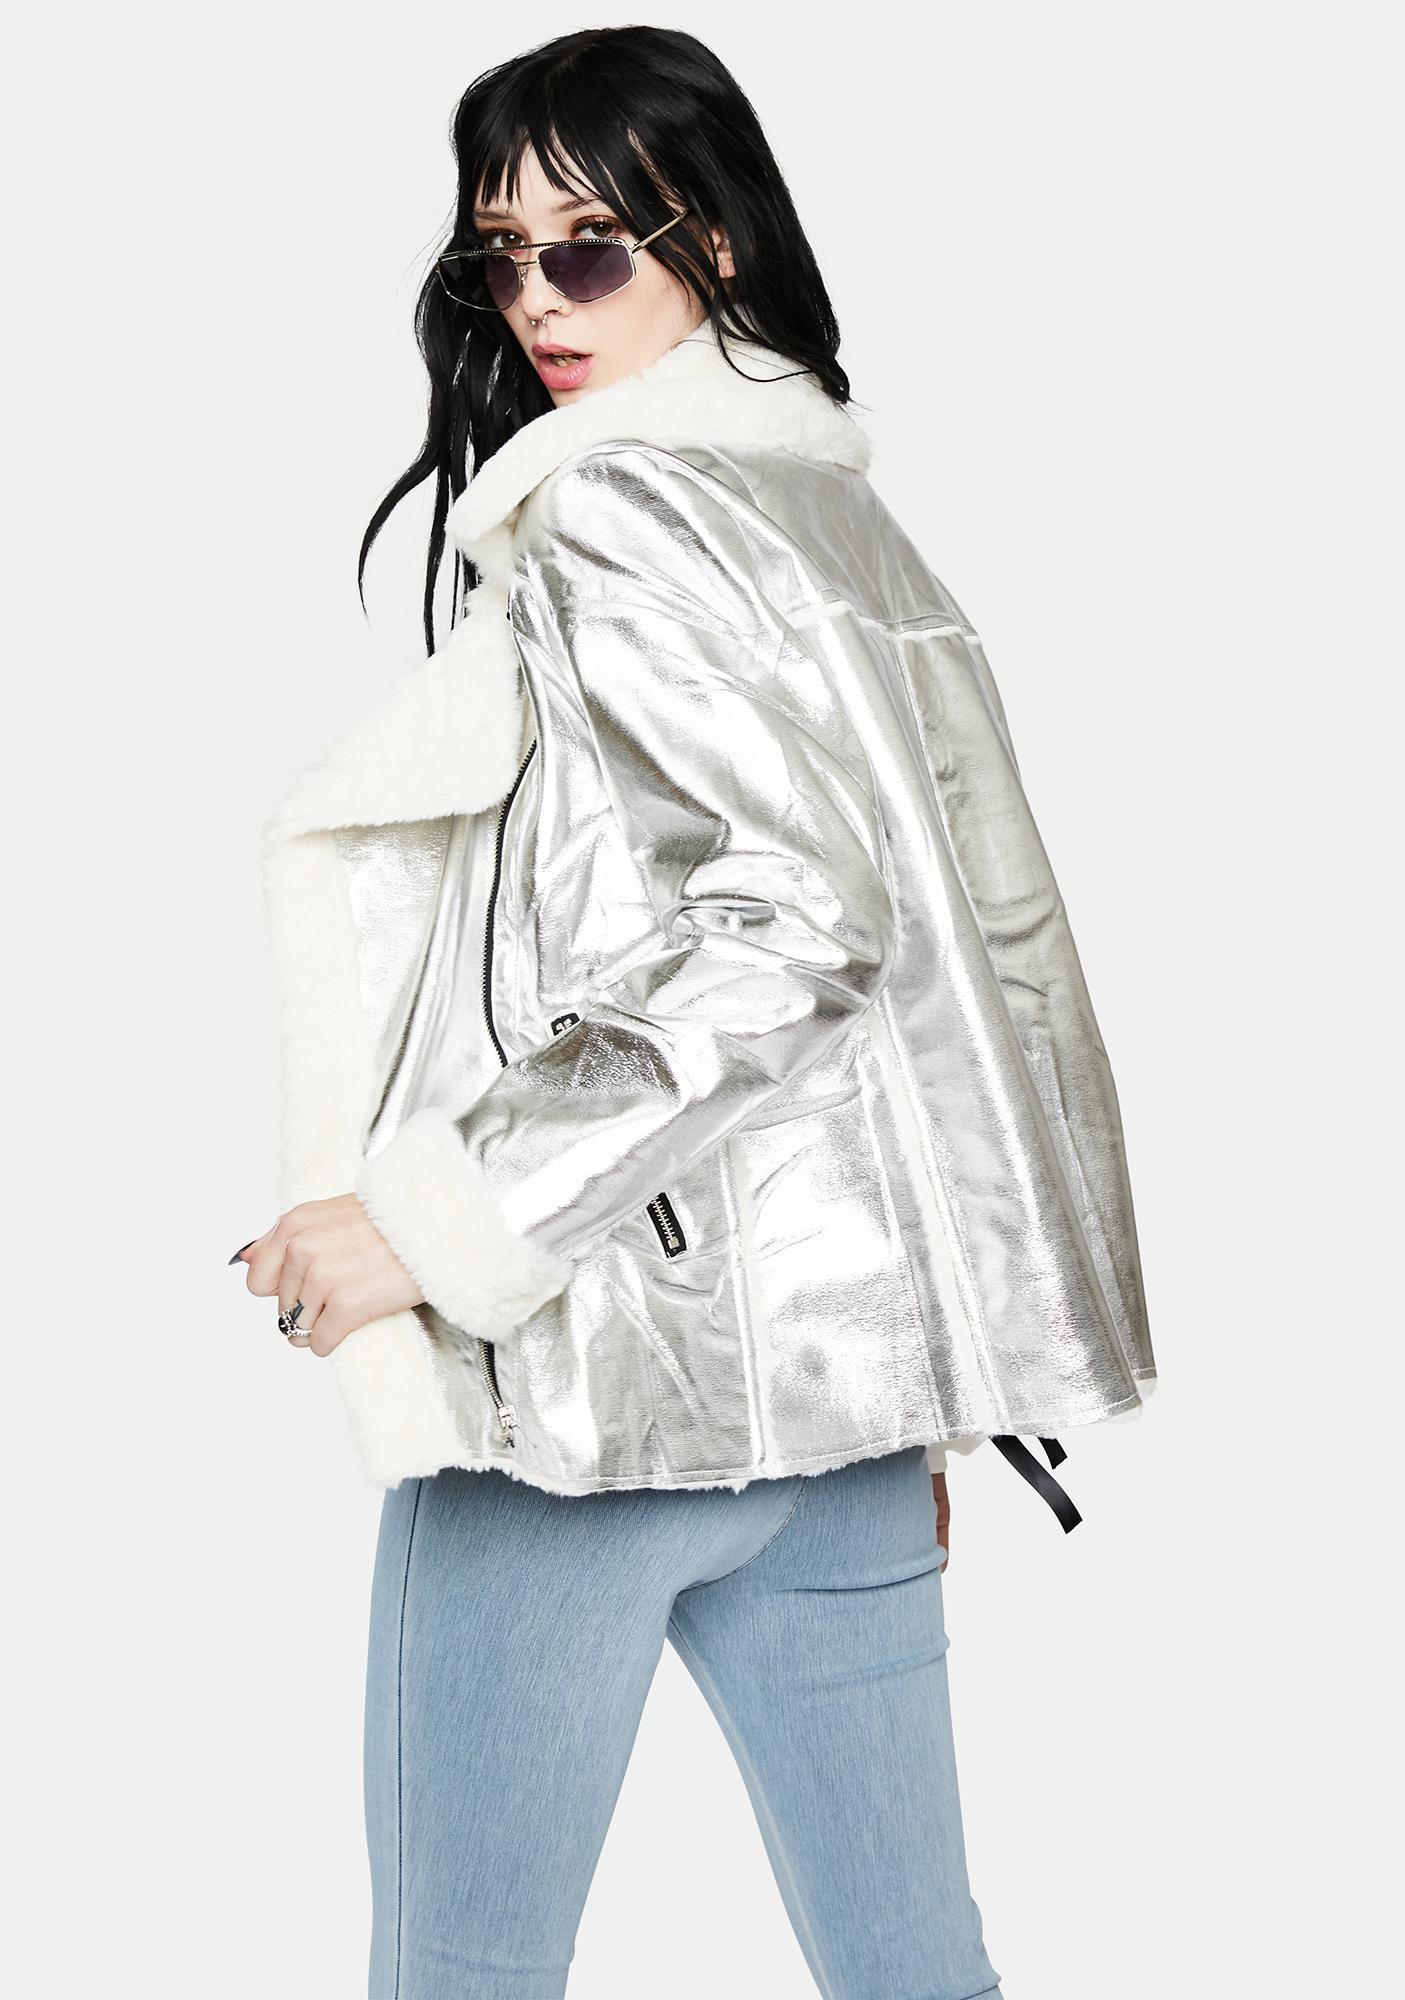 Shining Skies Metallic Moto Jacket